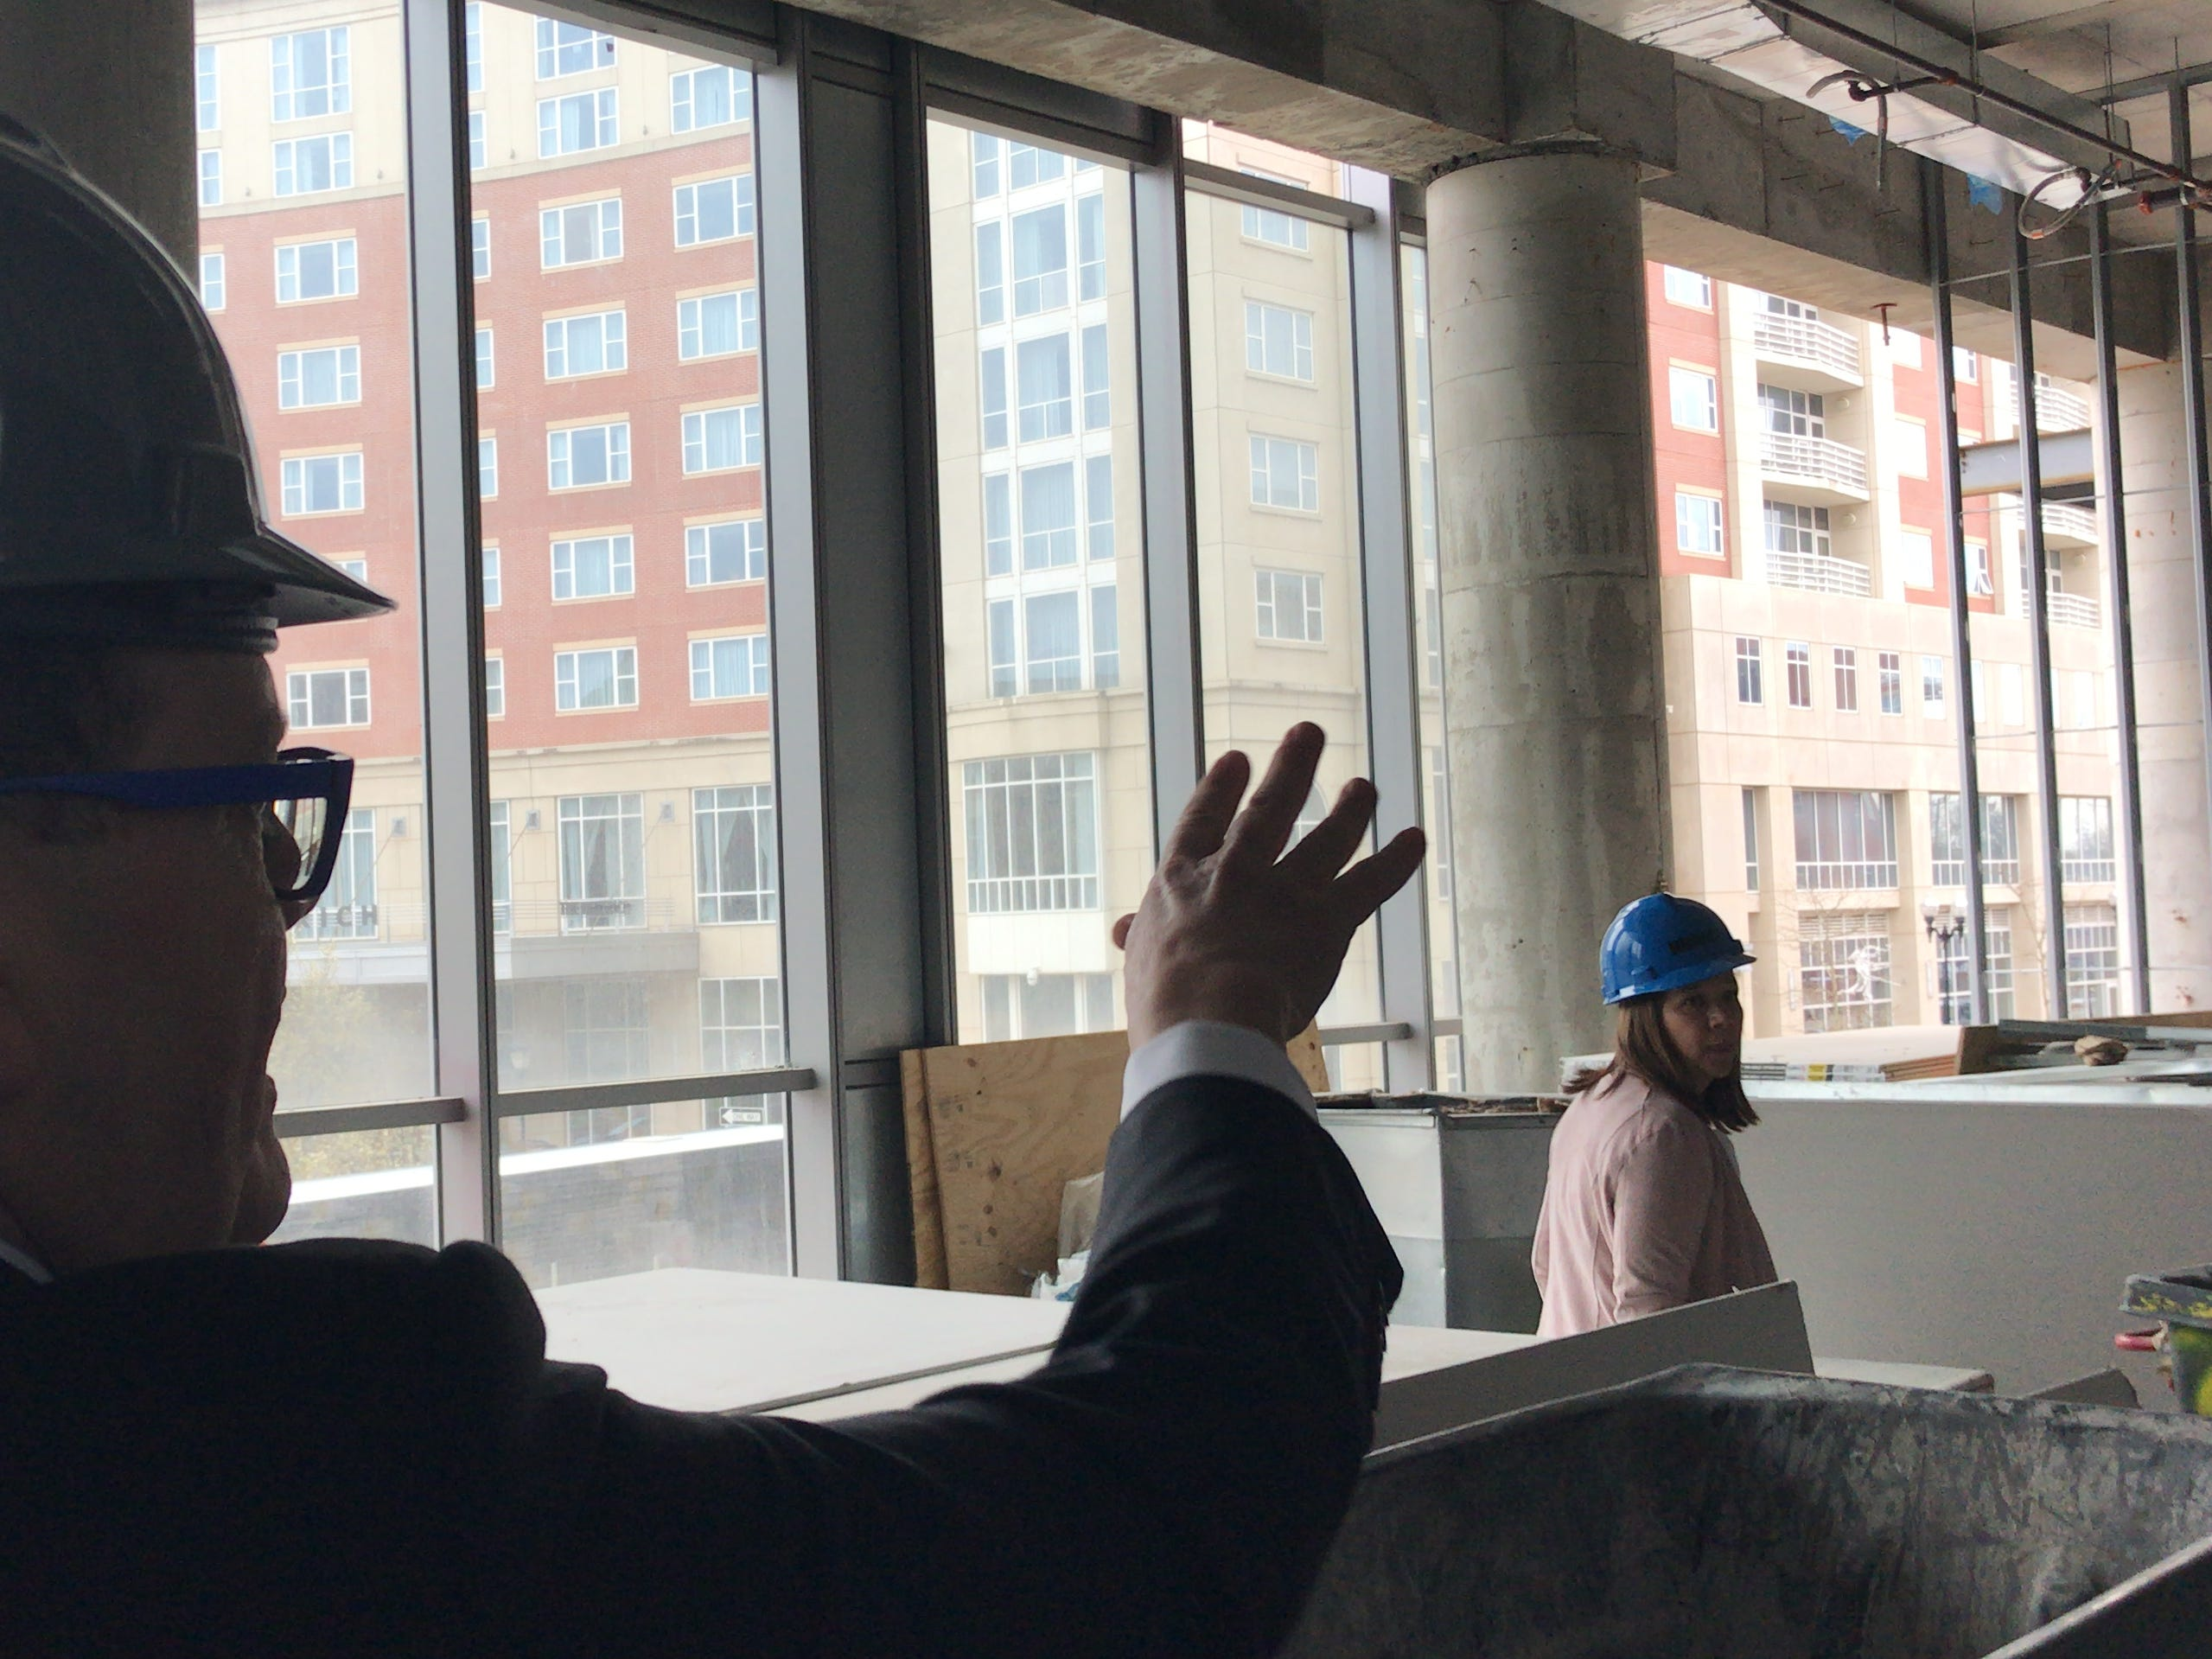 George Street Playhouse Artistic  Director David Saint and DEVCO Vice President Merissa A. Buczny discuss the view from the three large rehearsal rooms at the forthcoming New Brunswick Performing Arts Center.